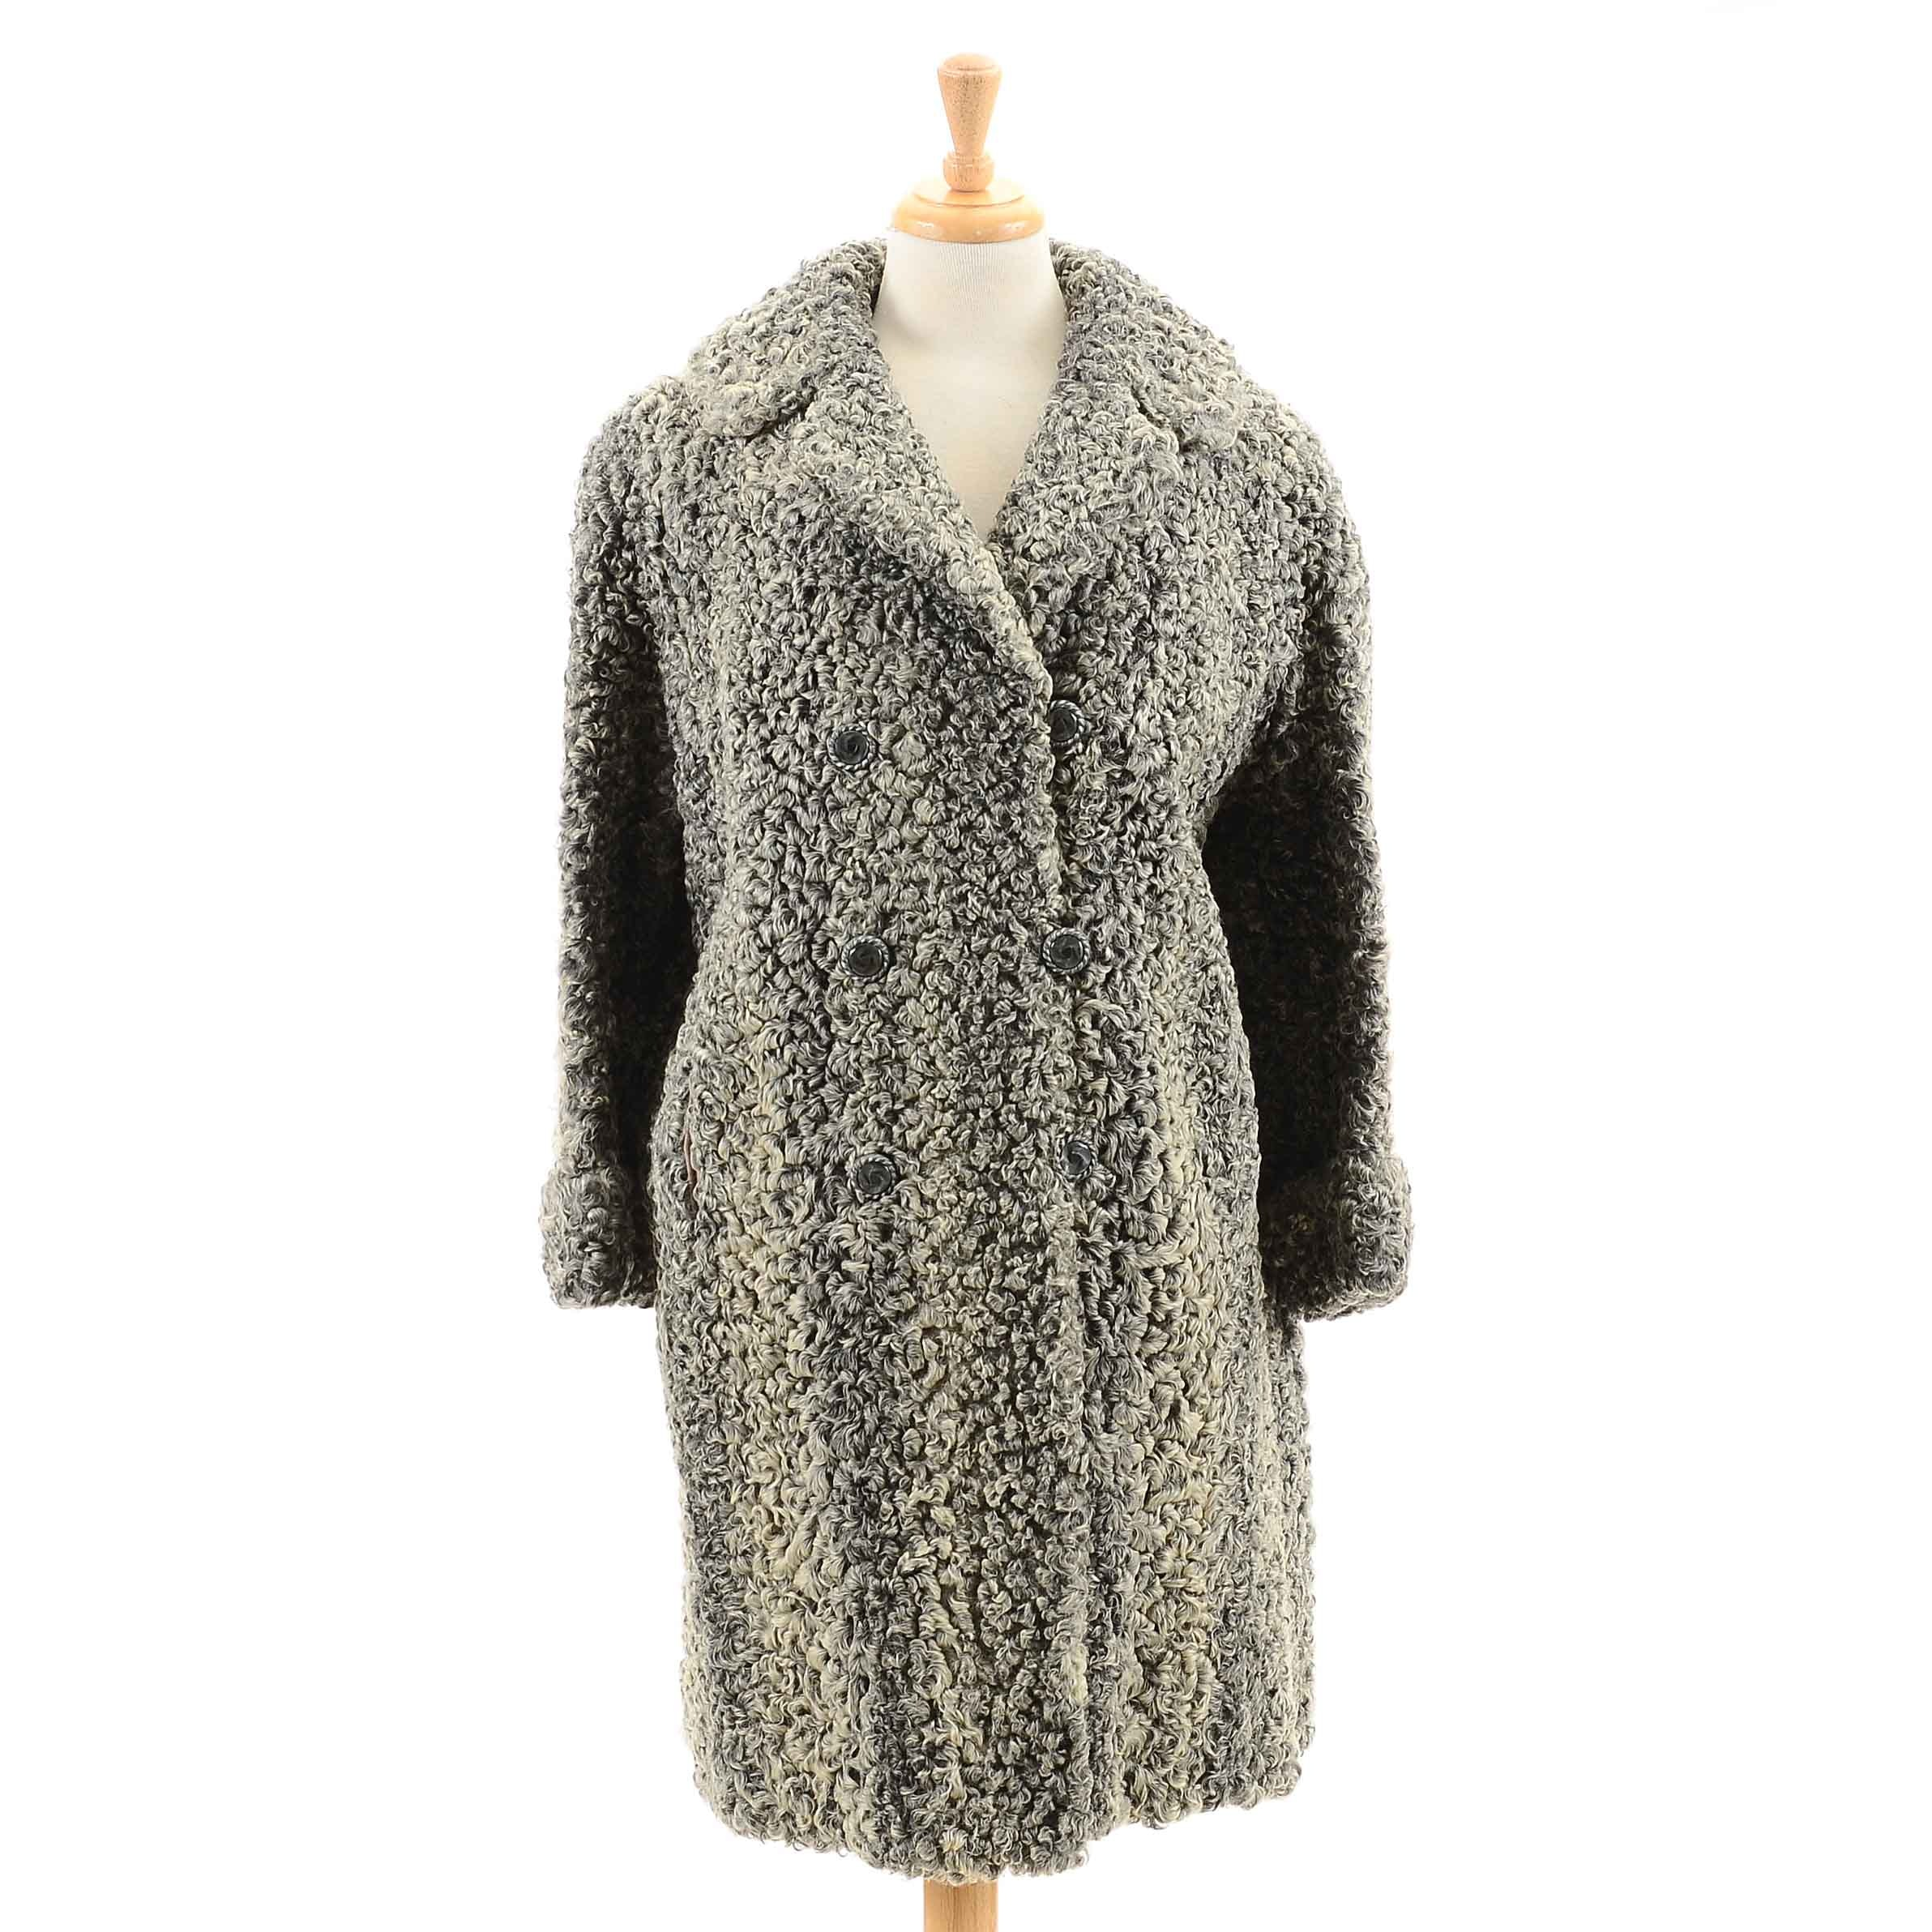 Women's Vintage Persian Lamb Coat